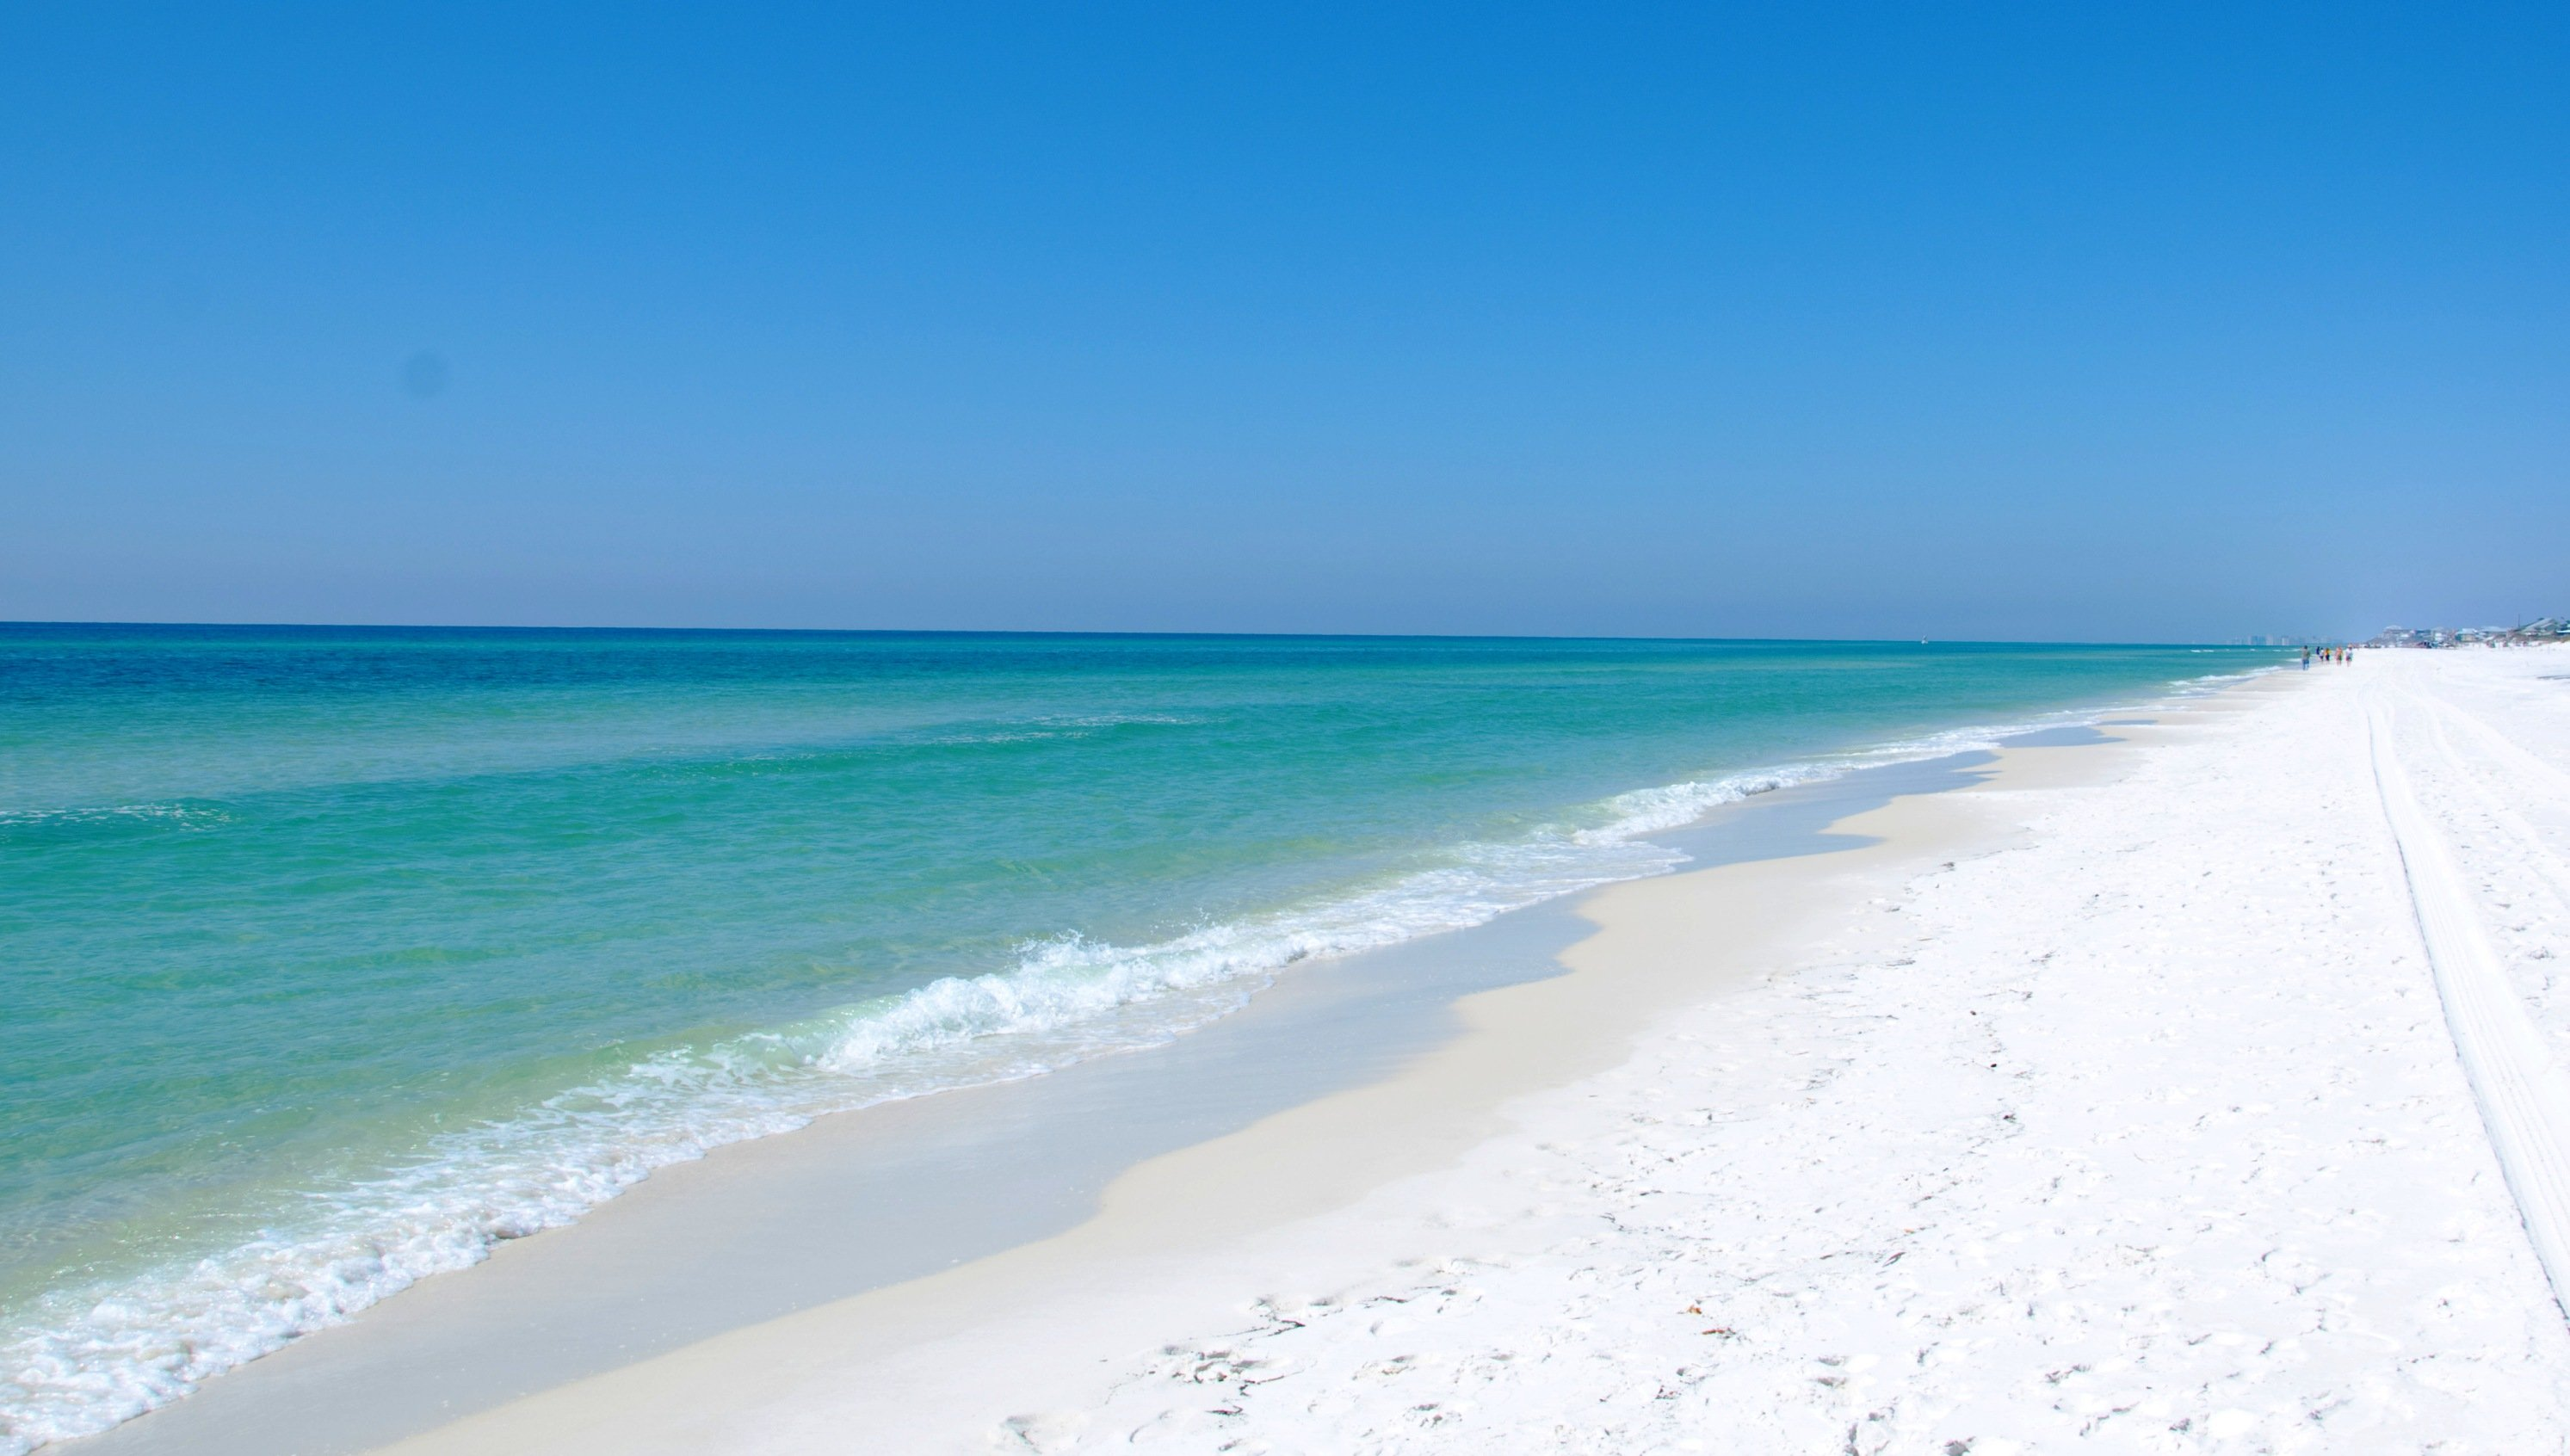 florida beach scenes for desktop 2986x1692